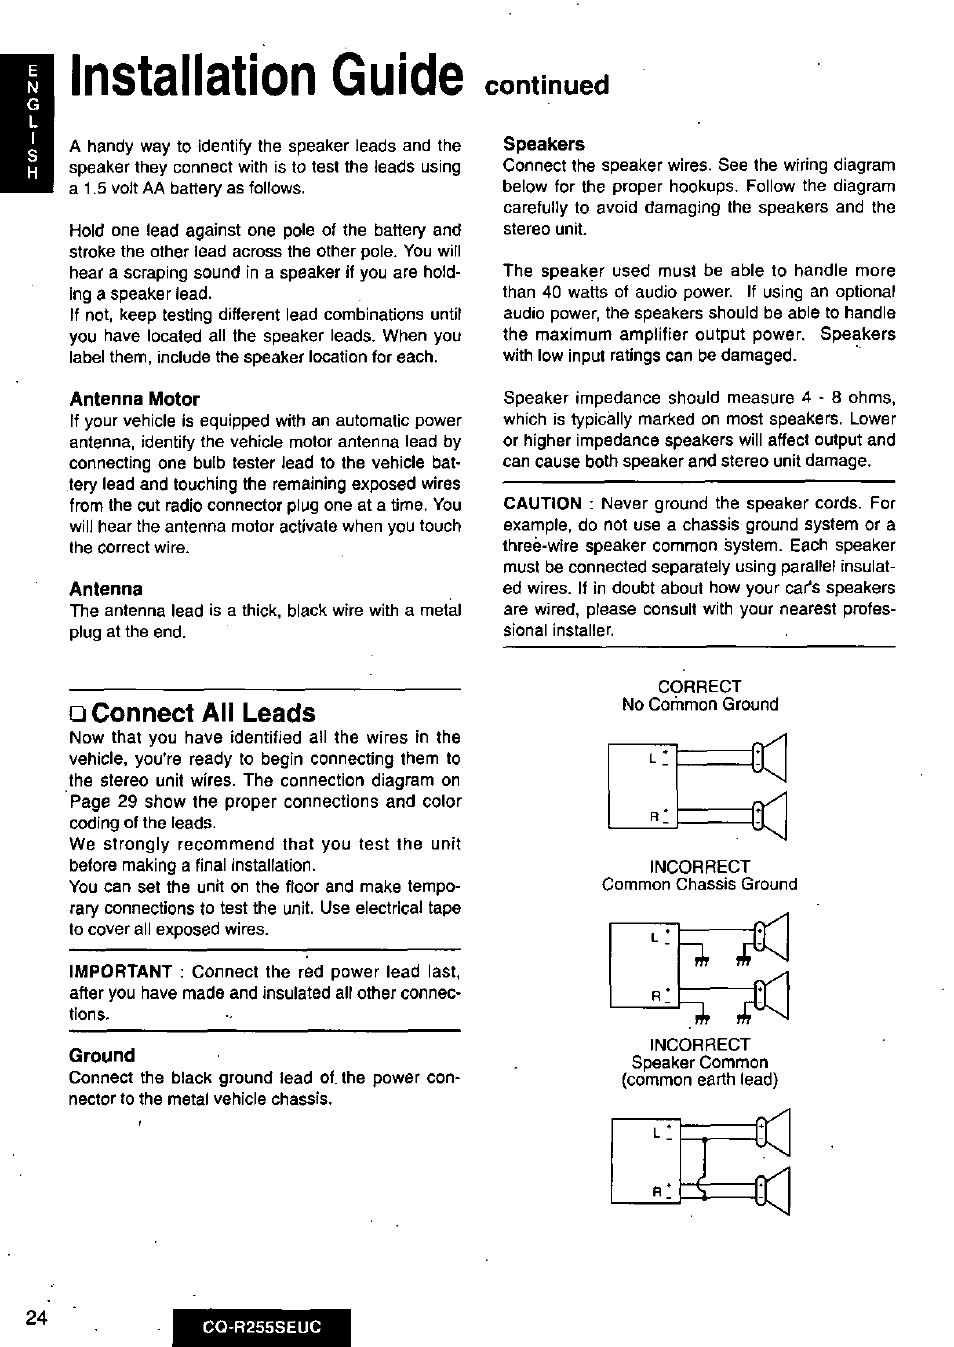 Enchanting Common Ground Wiring Diagrams Mold - Everything You Need ...